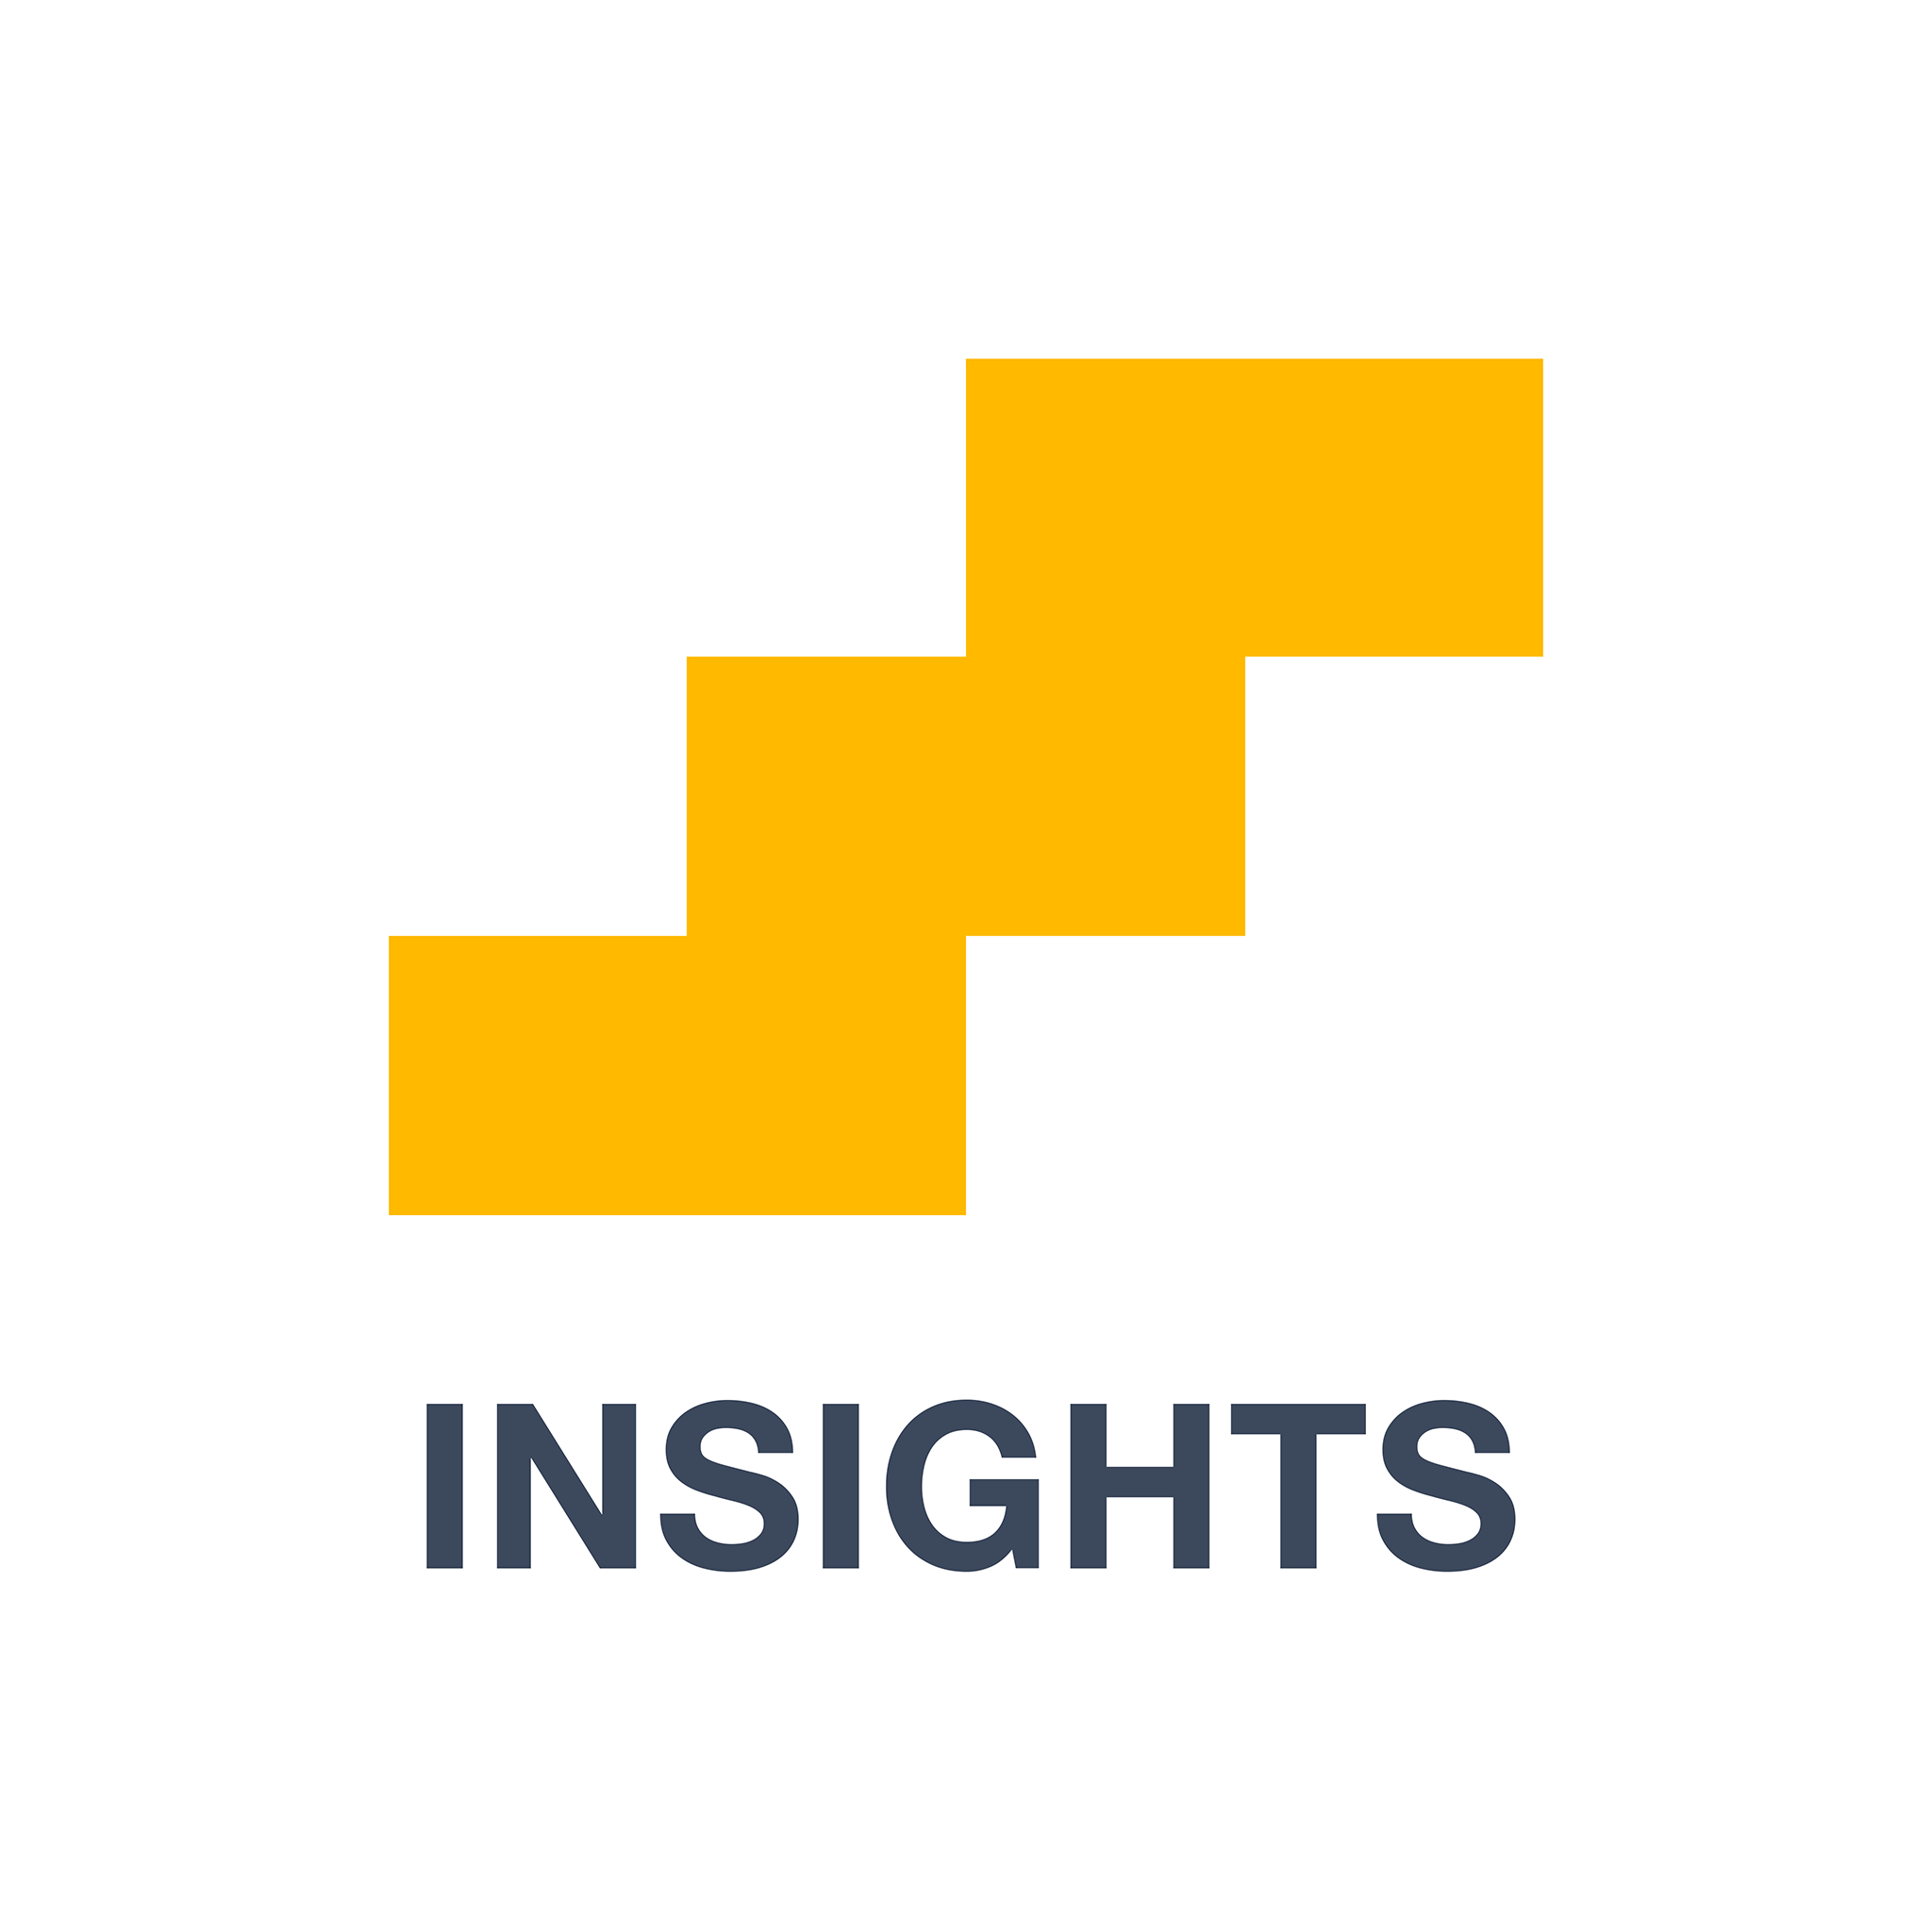 Insights - Analytics